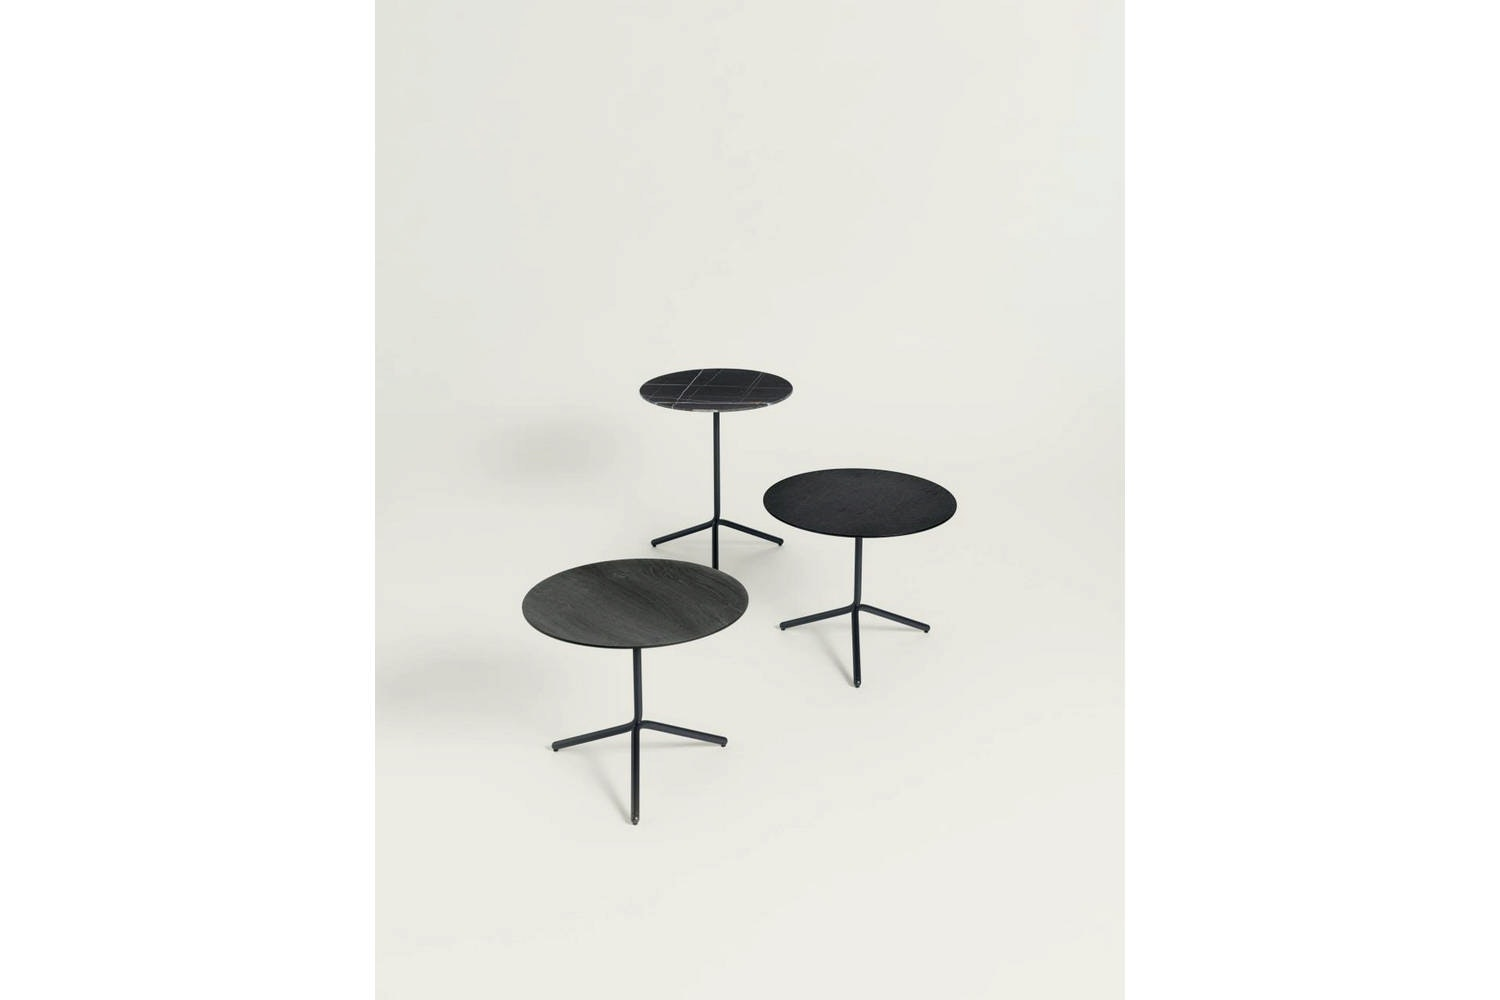 Kiwi Side Table by Keiji Takeuchi for Living Divani